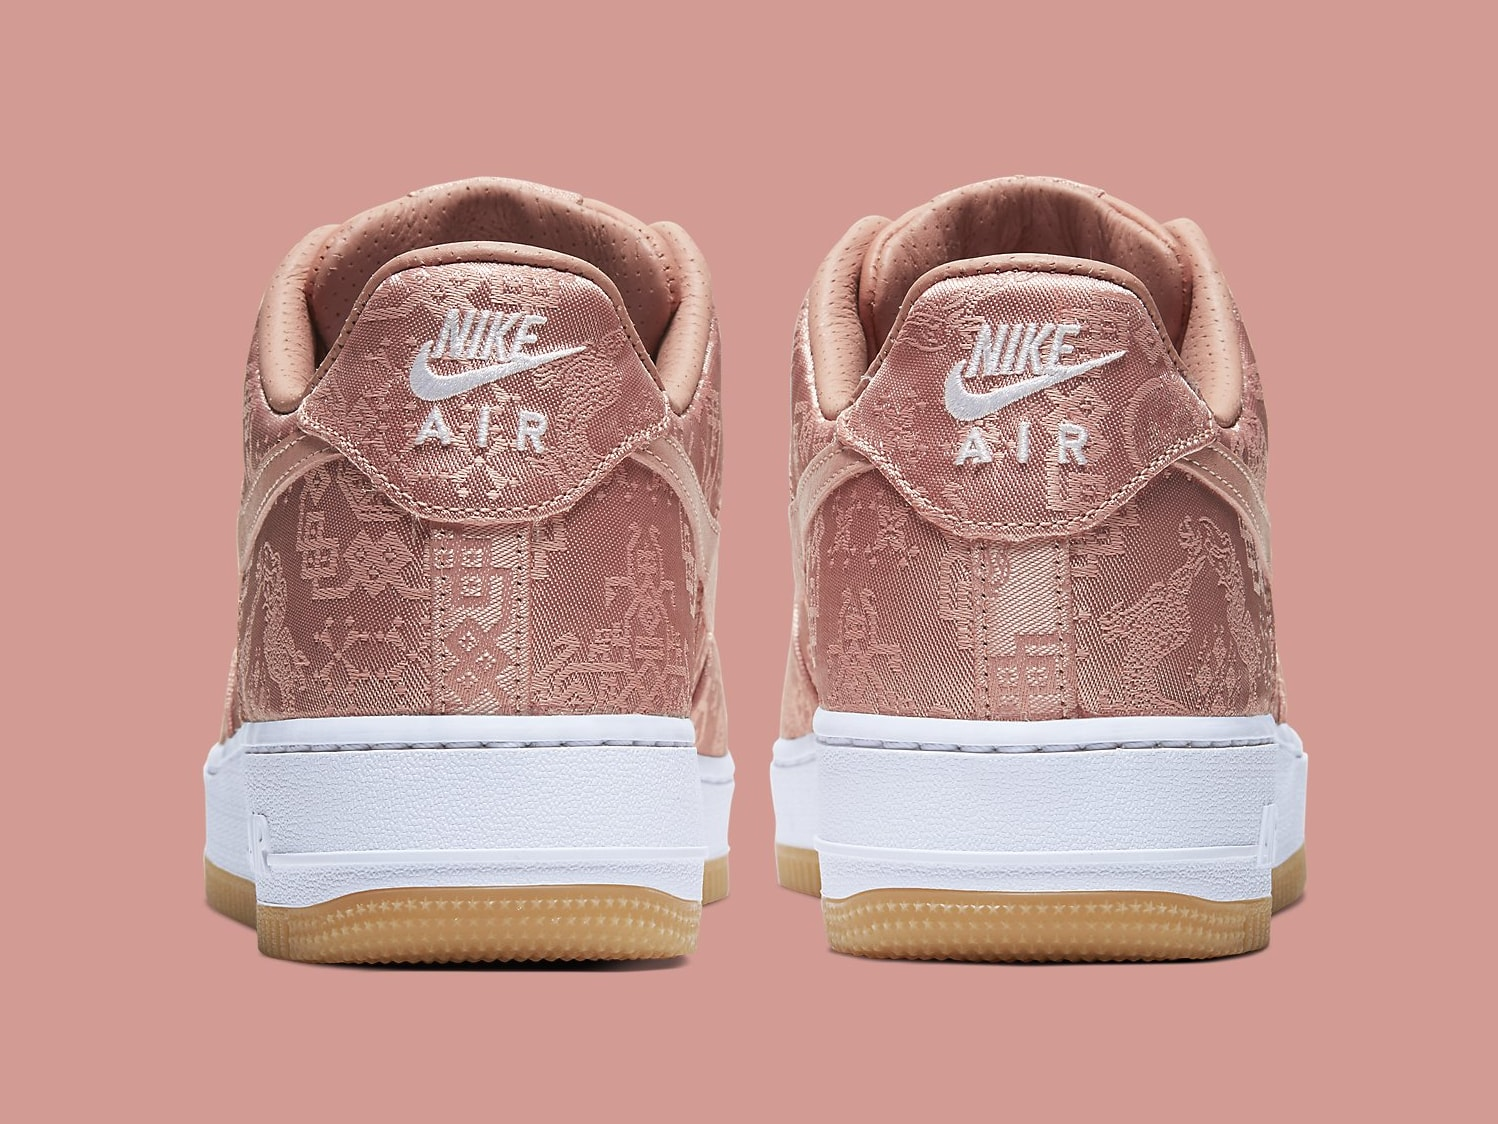 Clot x Nike Air Force 1 Rose Gold Release Date CJ5290-600 Heel